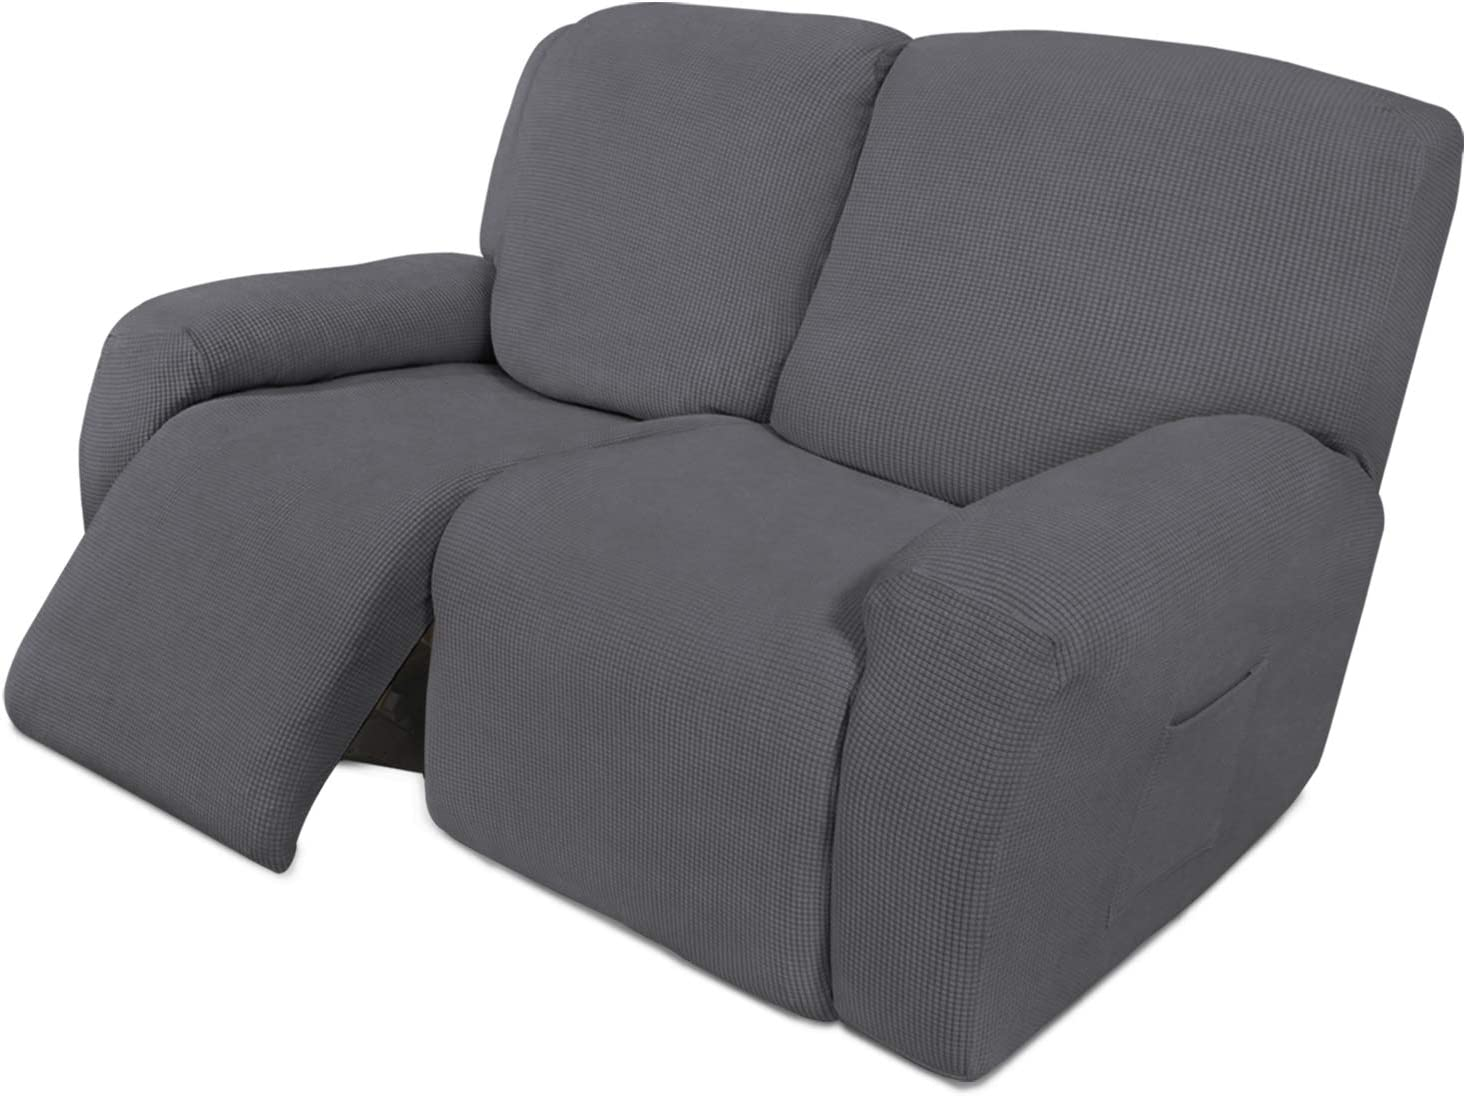 Easy-Going 6 Pieces Recliner Loveseat Stretch Sofa Slipcover Sofa Cover Furniture Protector Couch Soft with Elastic Bottom Kids, Spandex Jacquard Fabric Small Checks Gray